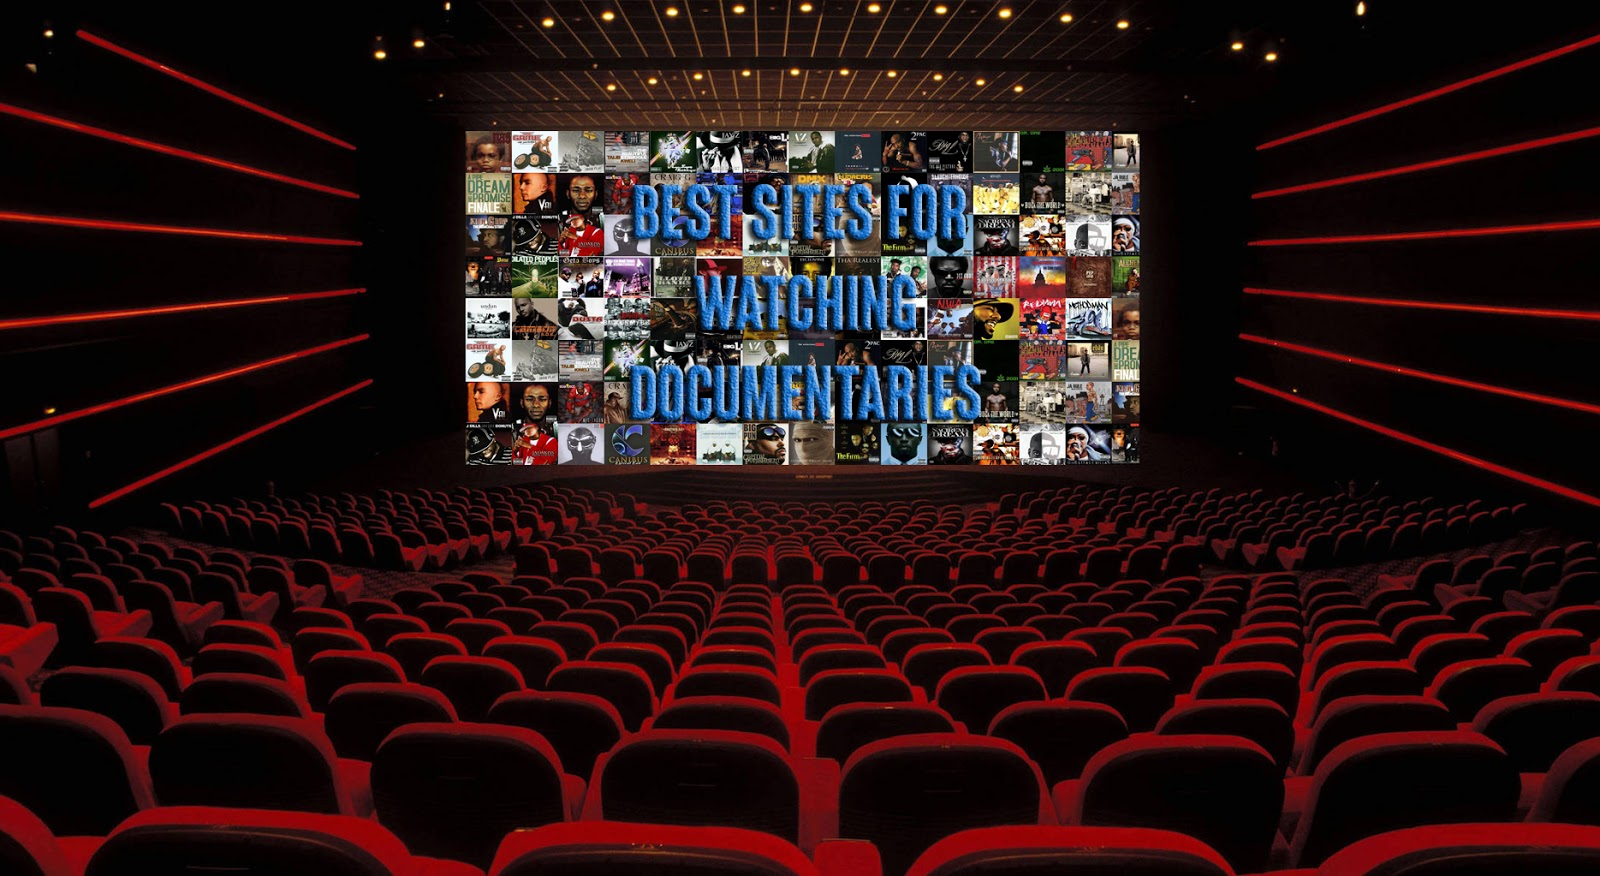 Where to Watch and Stream Documentaries Online for Free